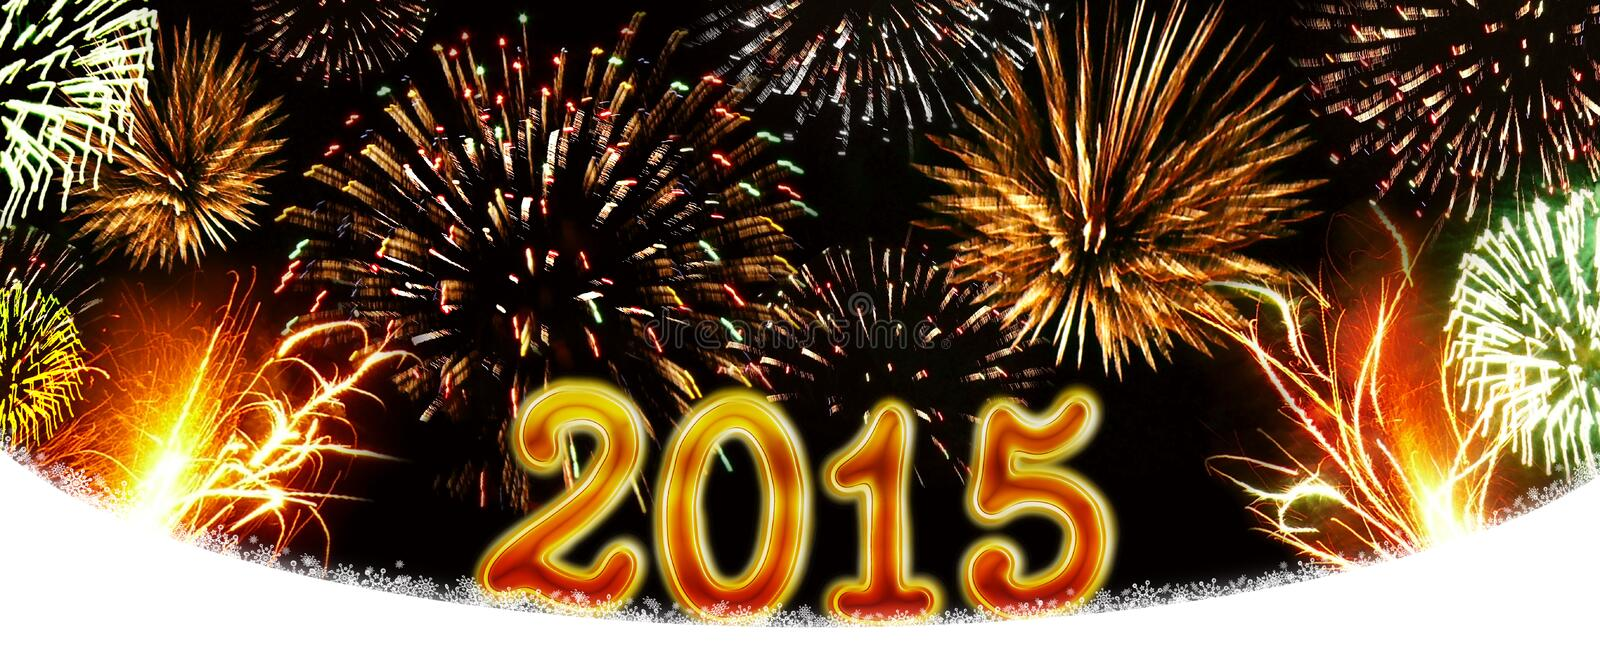 Fireworks New Year 2015. stock image